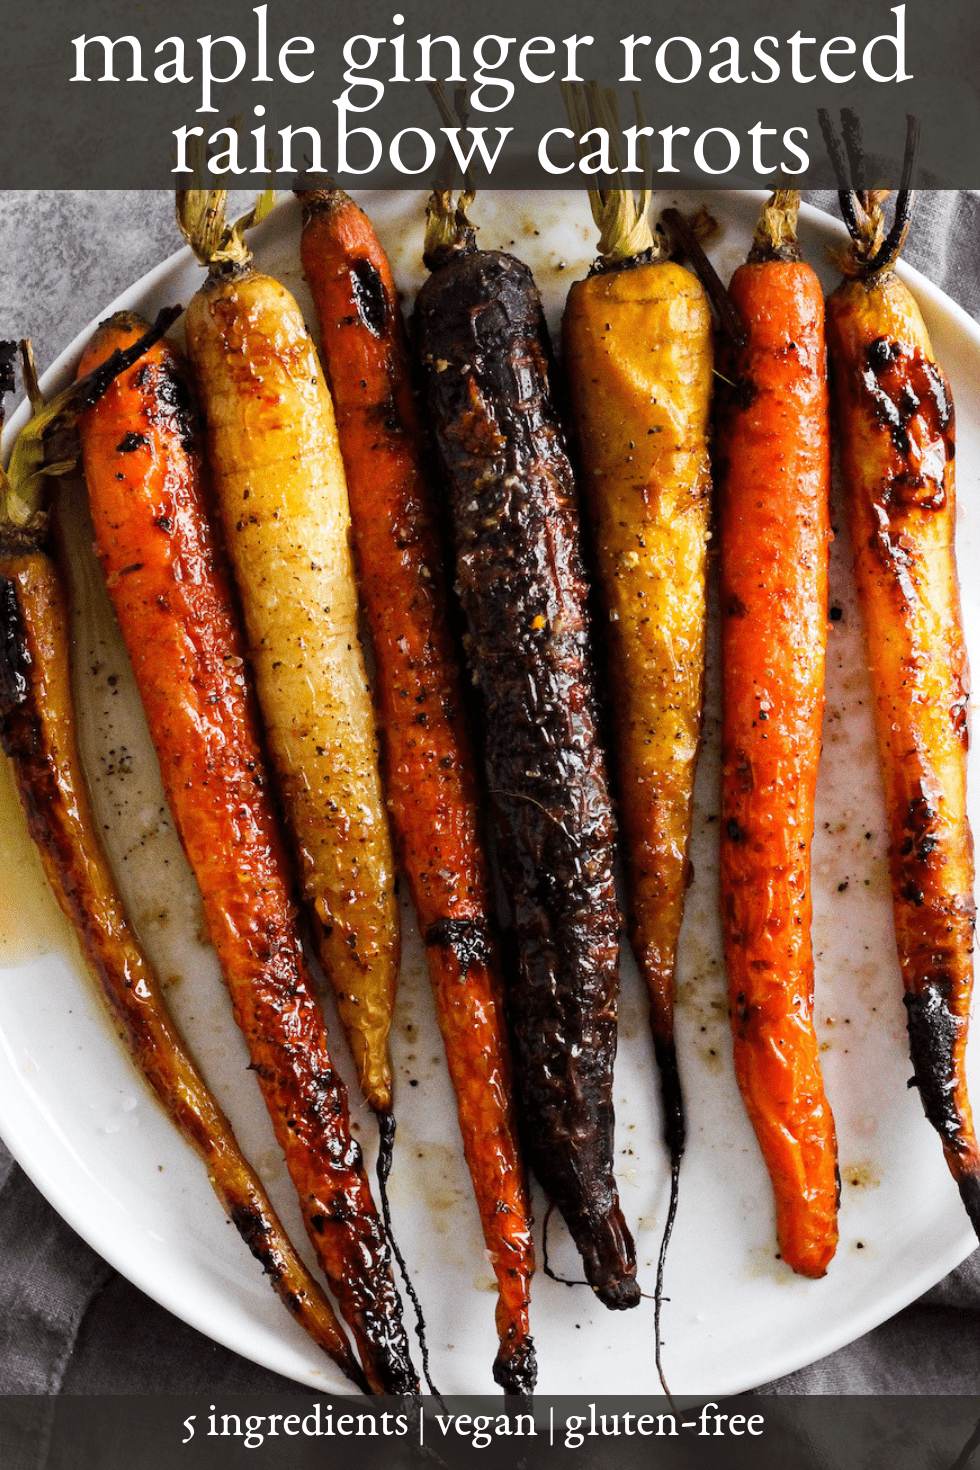 Roasted rainbow carrots make a colorful and delicious addition to your table. This recipe only has 5 ingredients and is naturally vegan, too! Good for the holidays or any day. Use regular (orange) carrots if you can't find rainbow!  #gratefulgrazer #plantbased #5ingredients #sidedish #rainbowcarrots #easyrecipes #healthyrecipes #veganrecipes